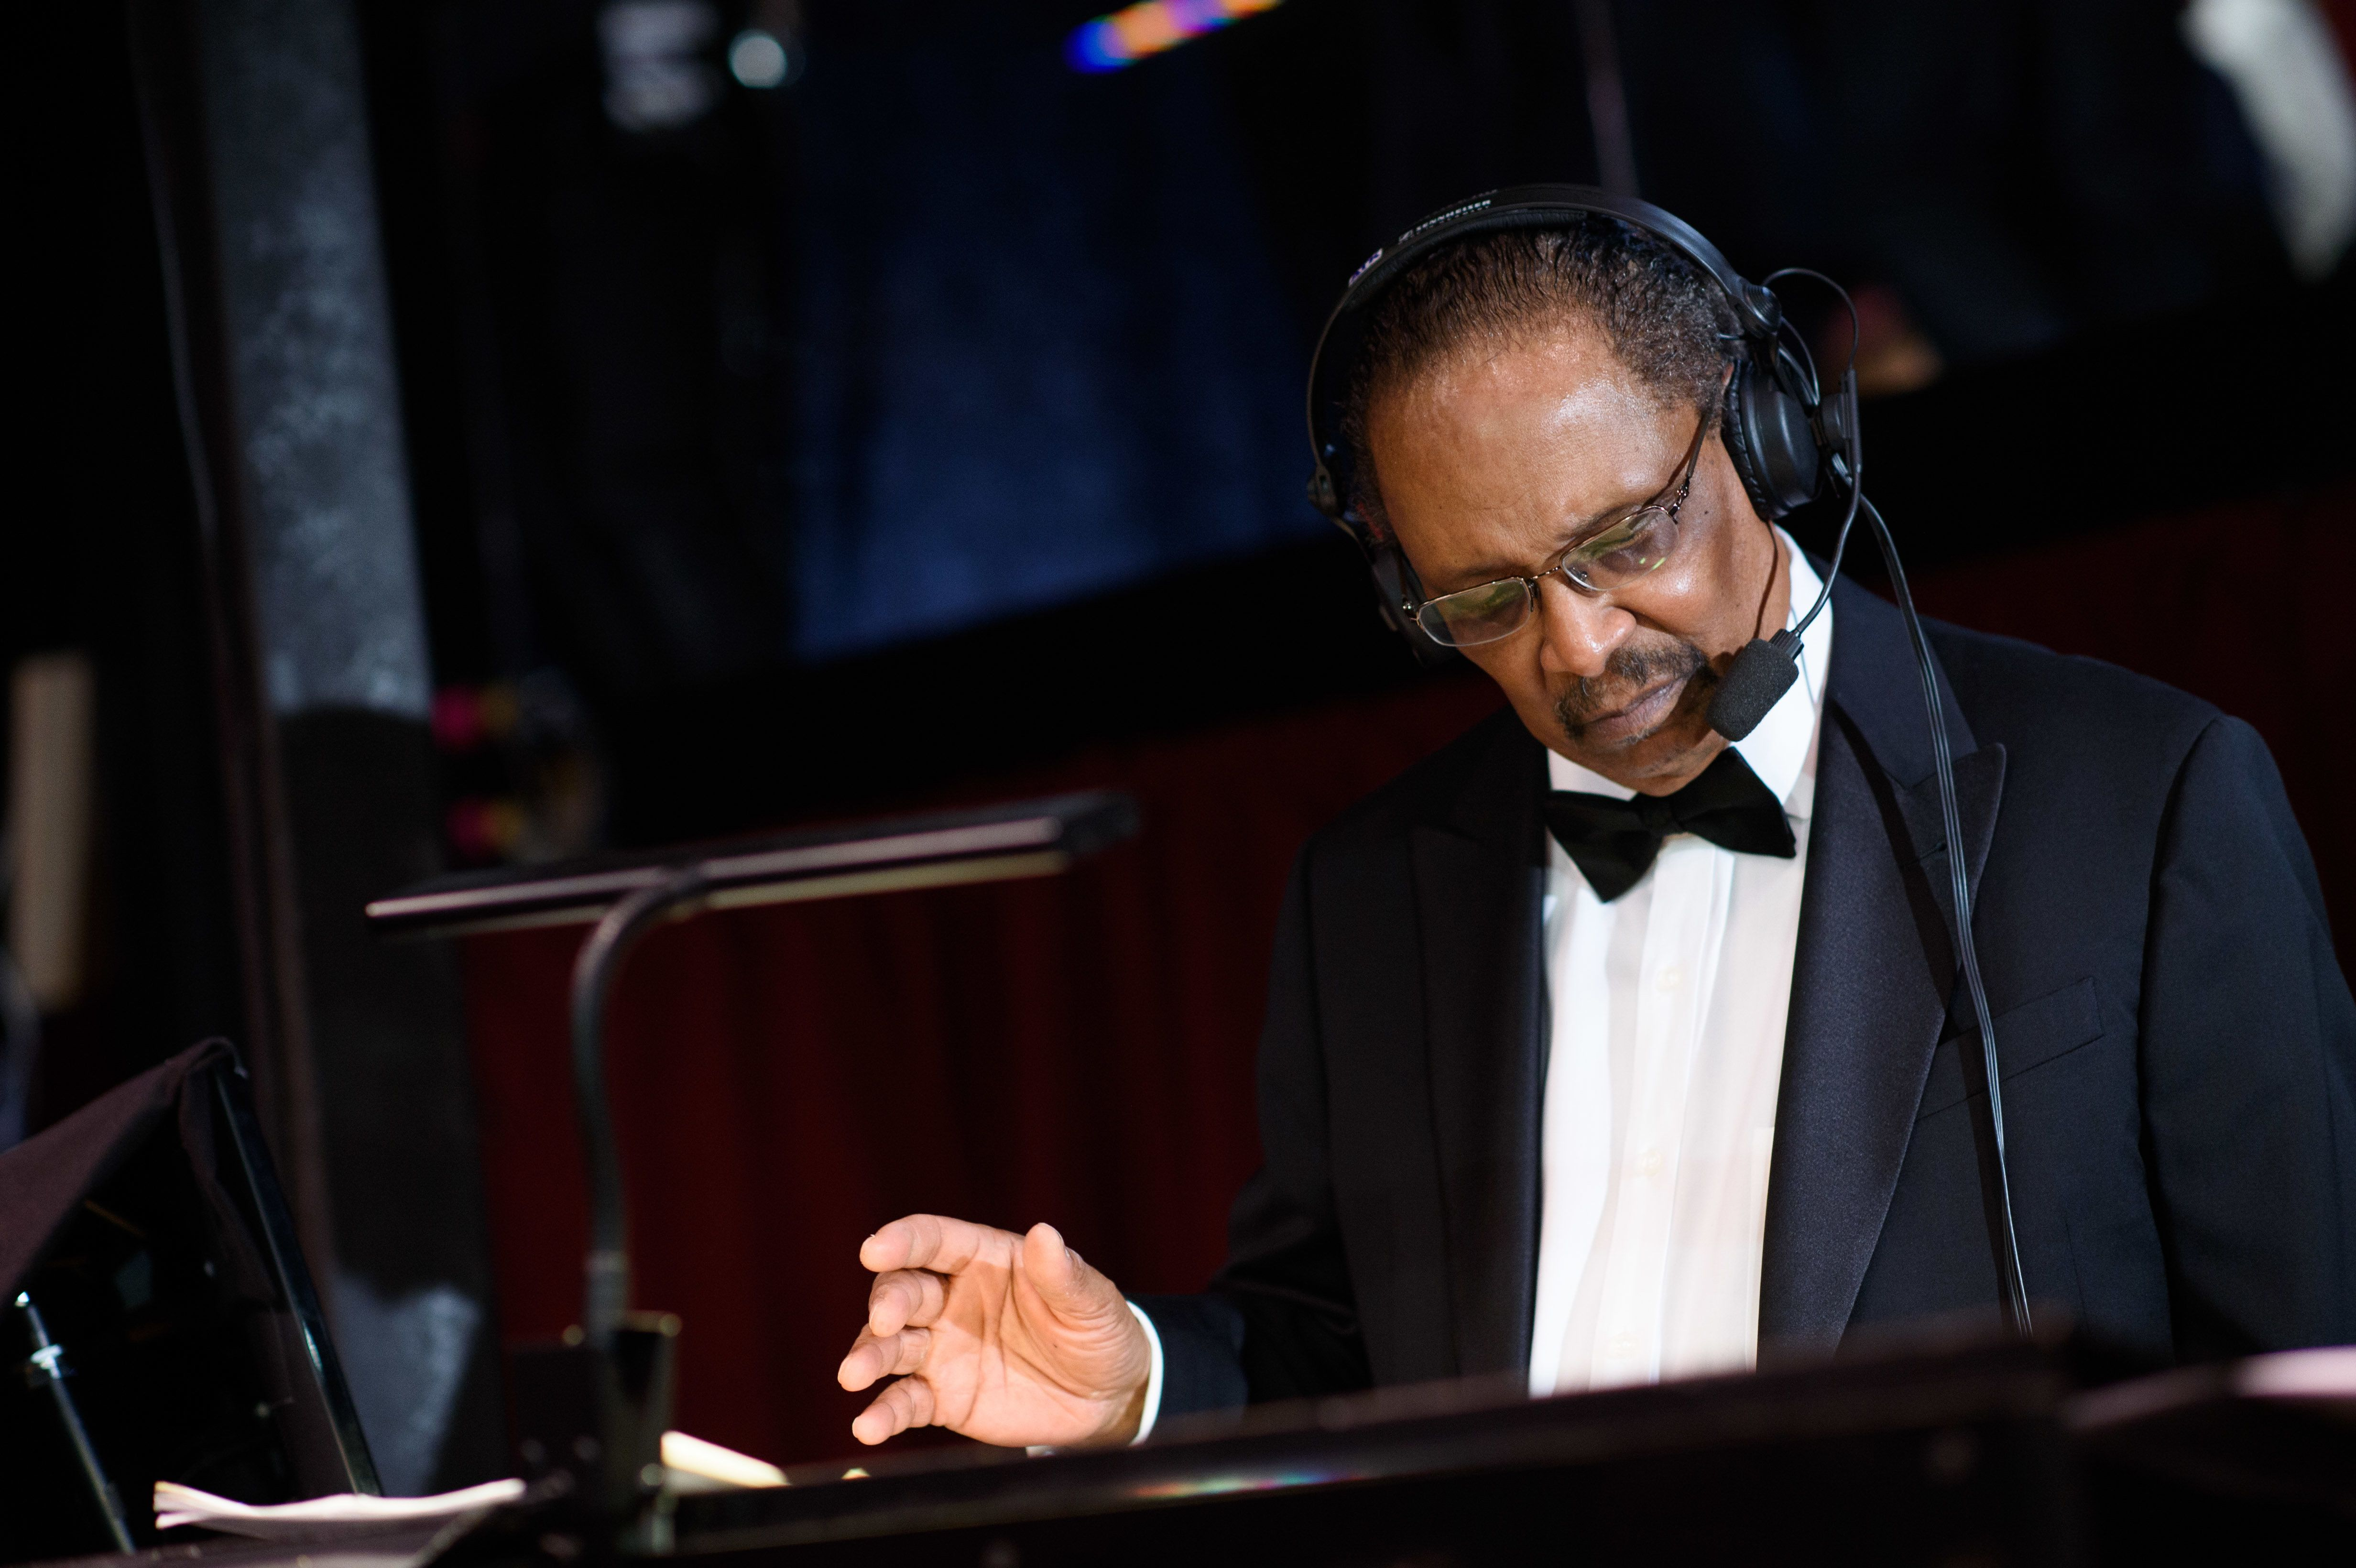 Harold Wheeler served as musical director for the 89th Academy Awards last year, too.